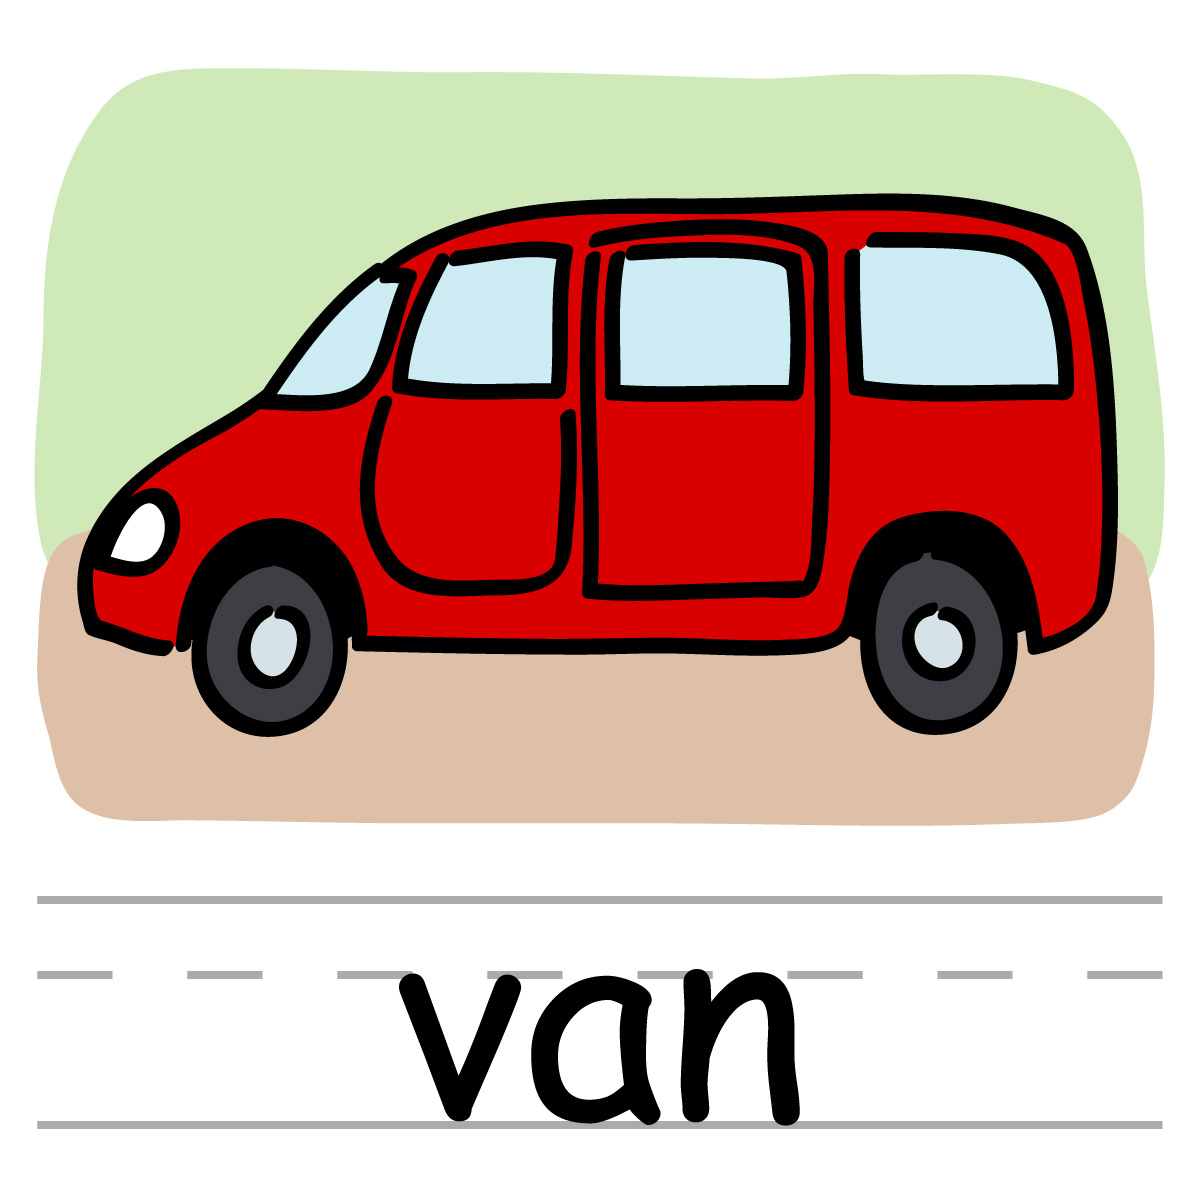 Van Cartoon Clipart - Clipart Kid